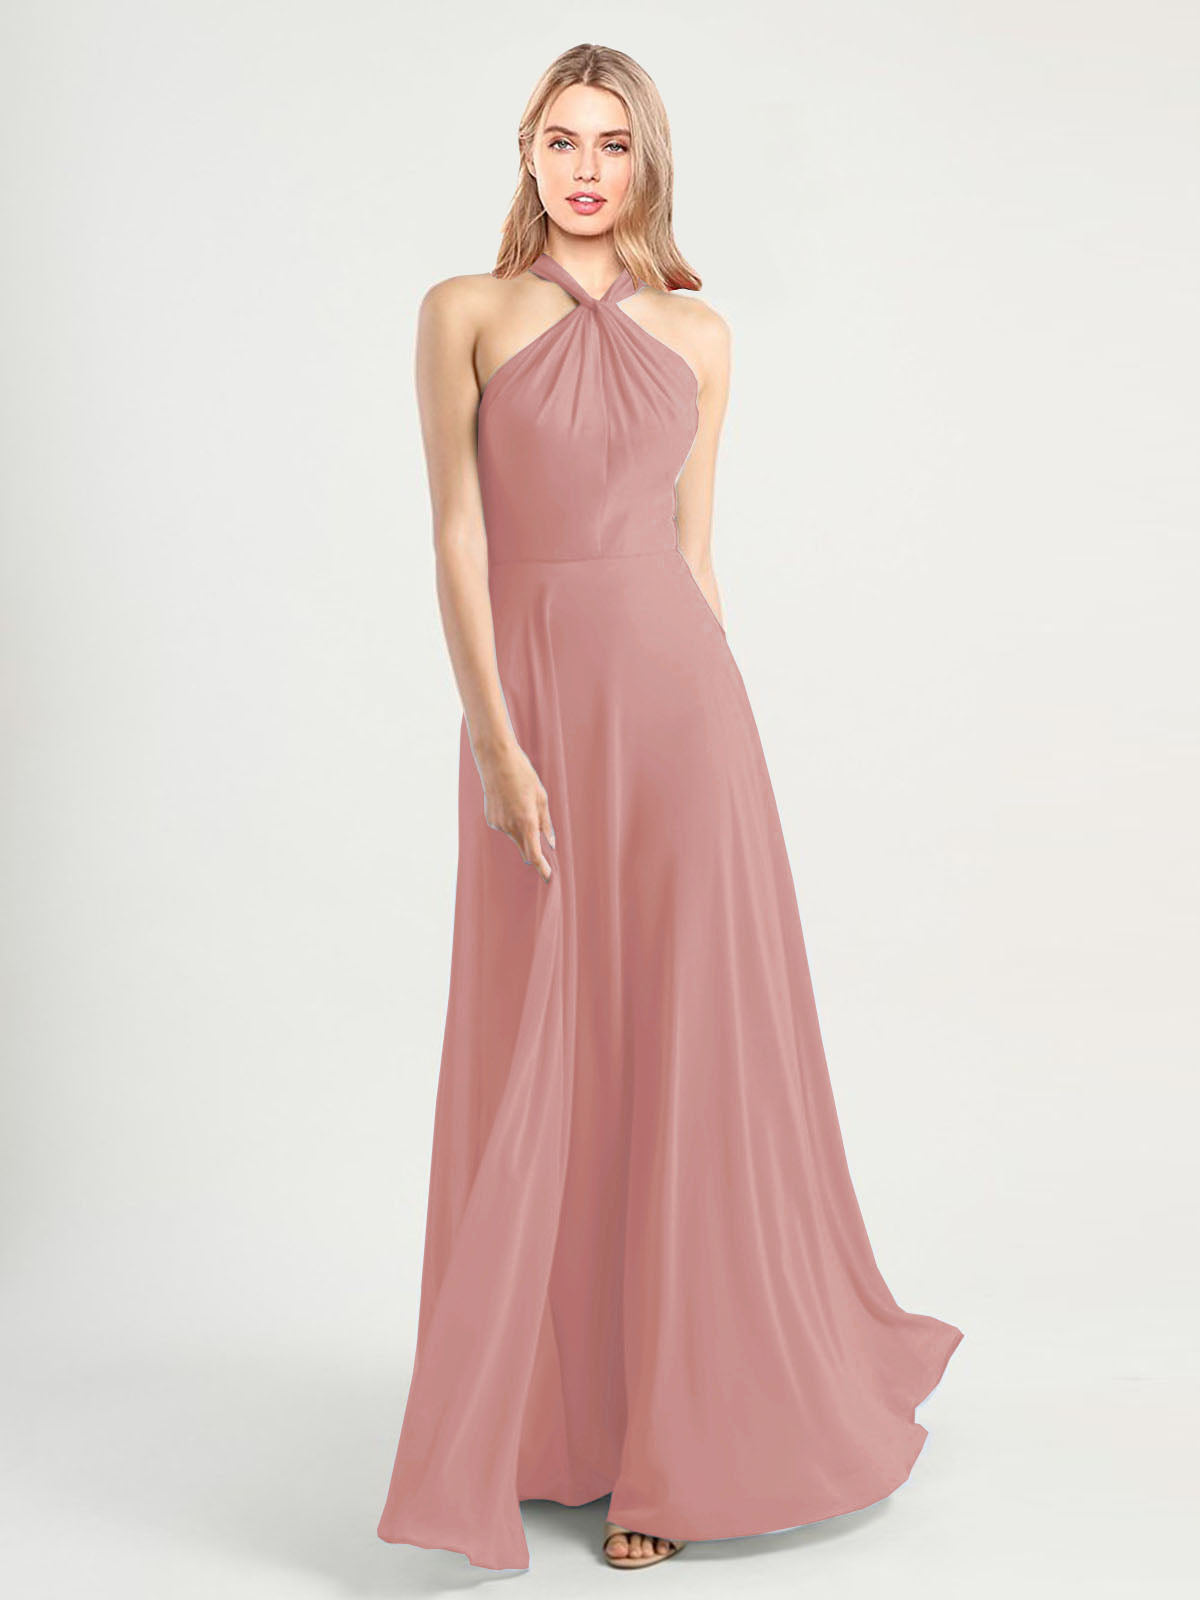 Long A-Line High Neck, Halter Sleeveless Dusty Pink Chiffon Bridesmaid Dress Yoli